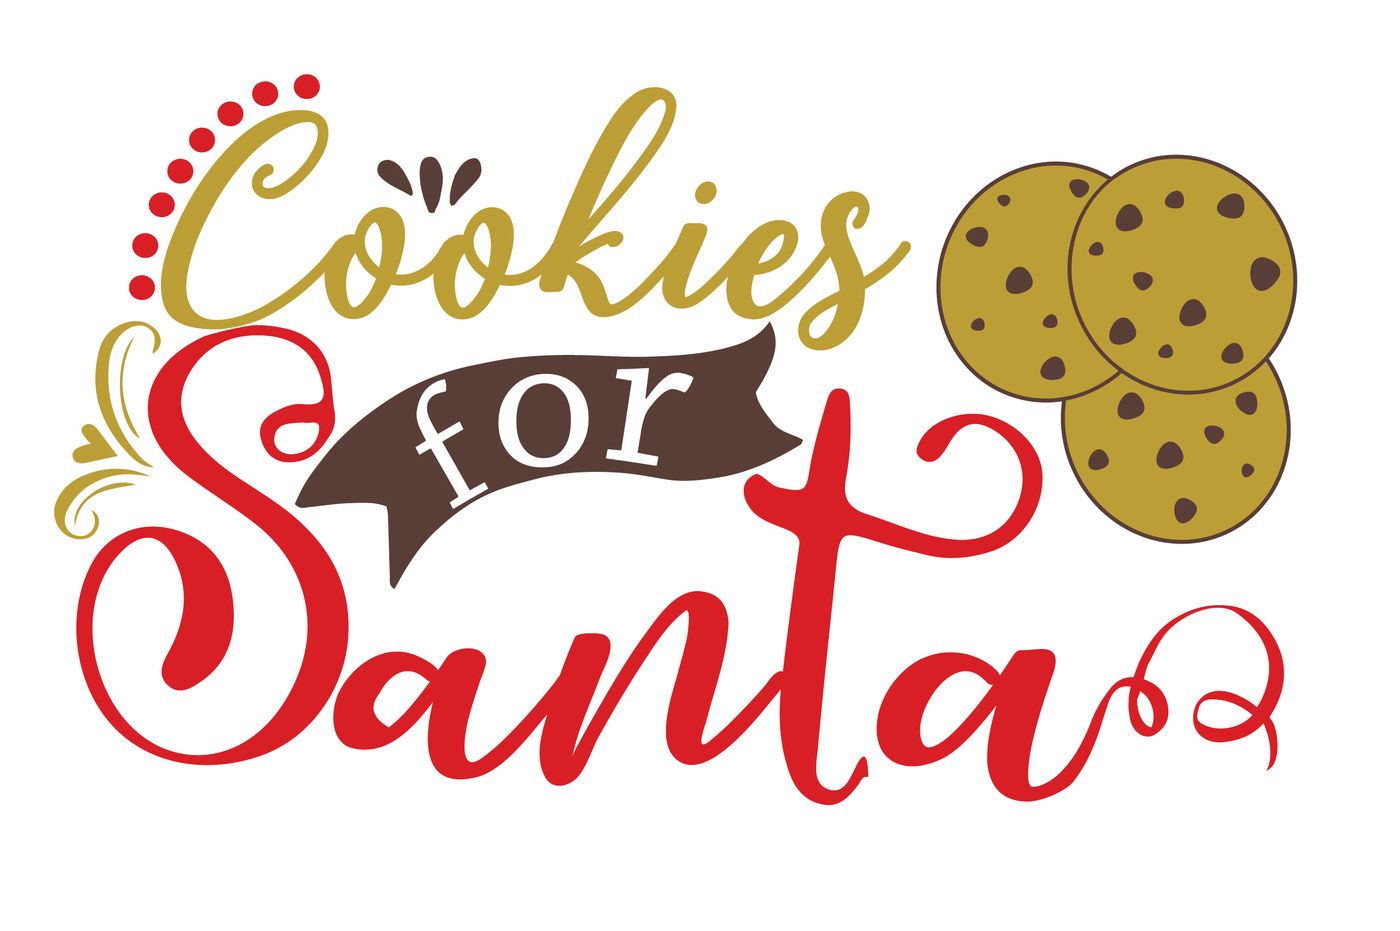 Cookies For Santa Svg The Giving Plate Svg Christmas 1105s By Hamhamart Thehungryjpeg Com